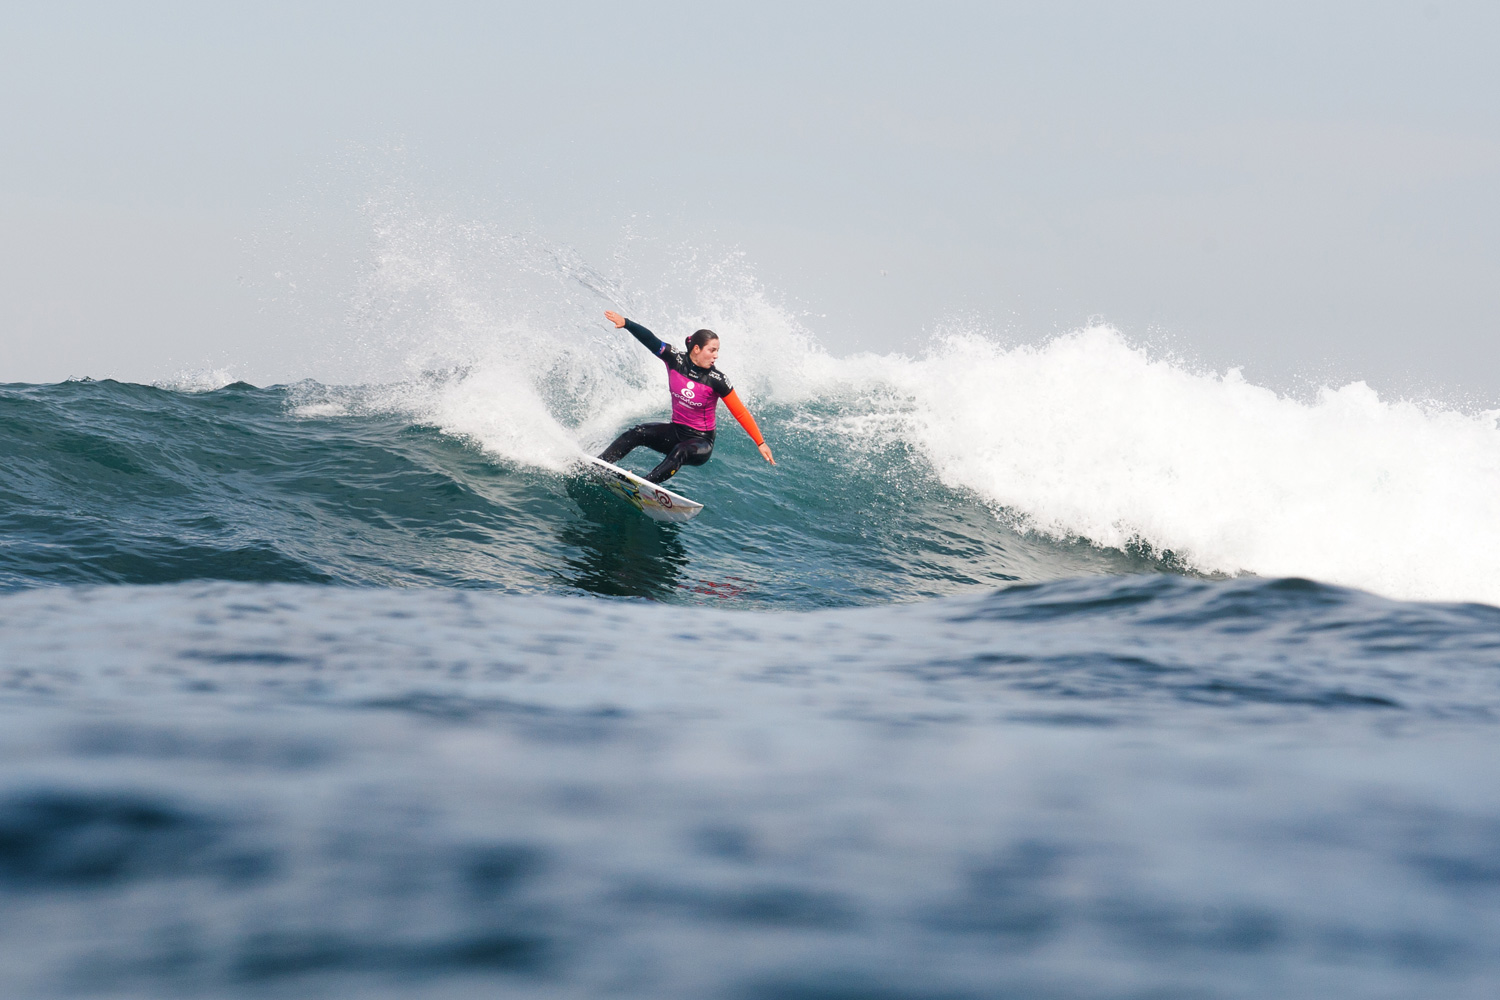 Tyler Wright placed second in her Rip Curl Pro first round heat with a score of 10.94.